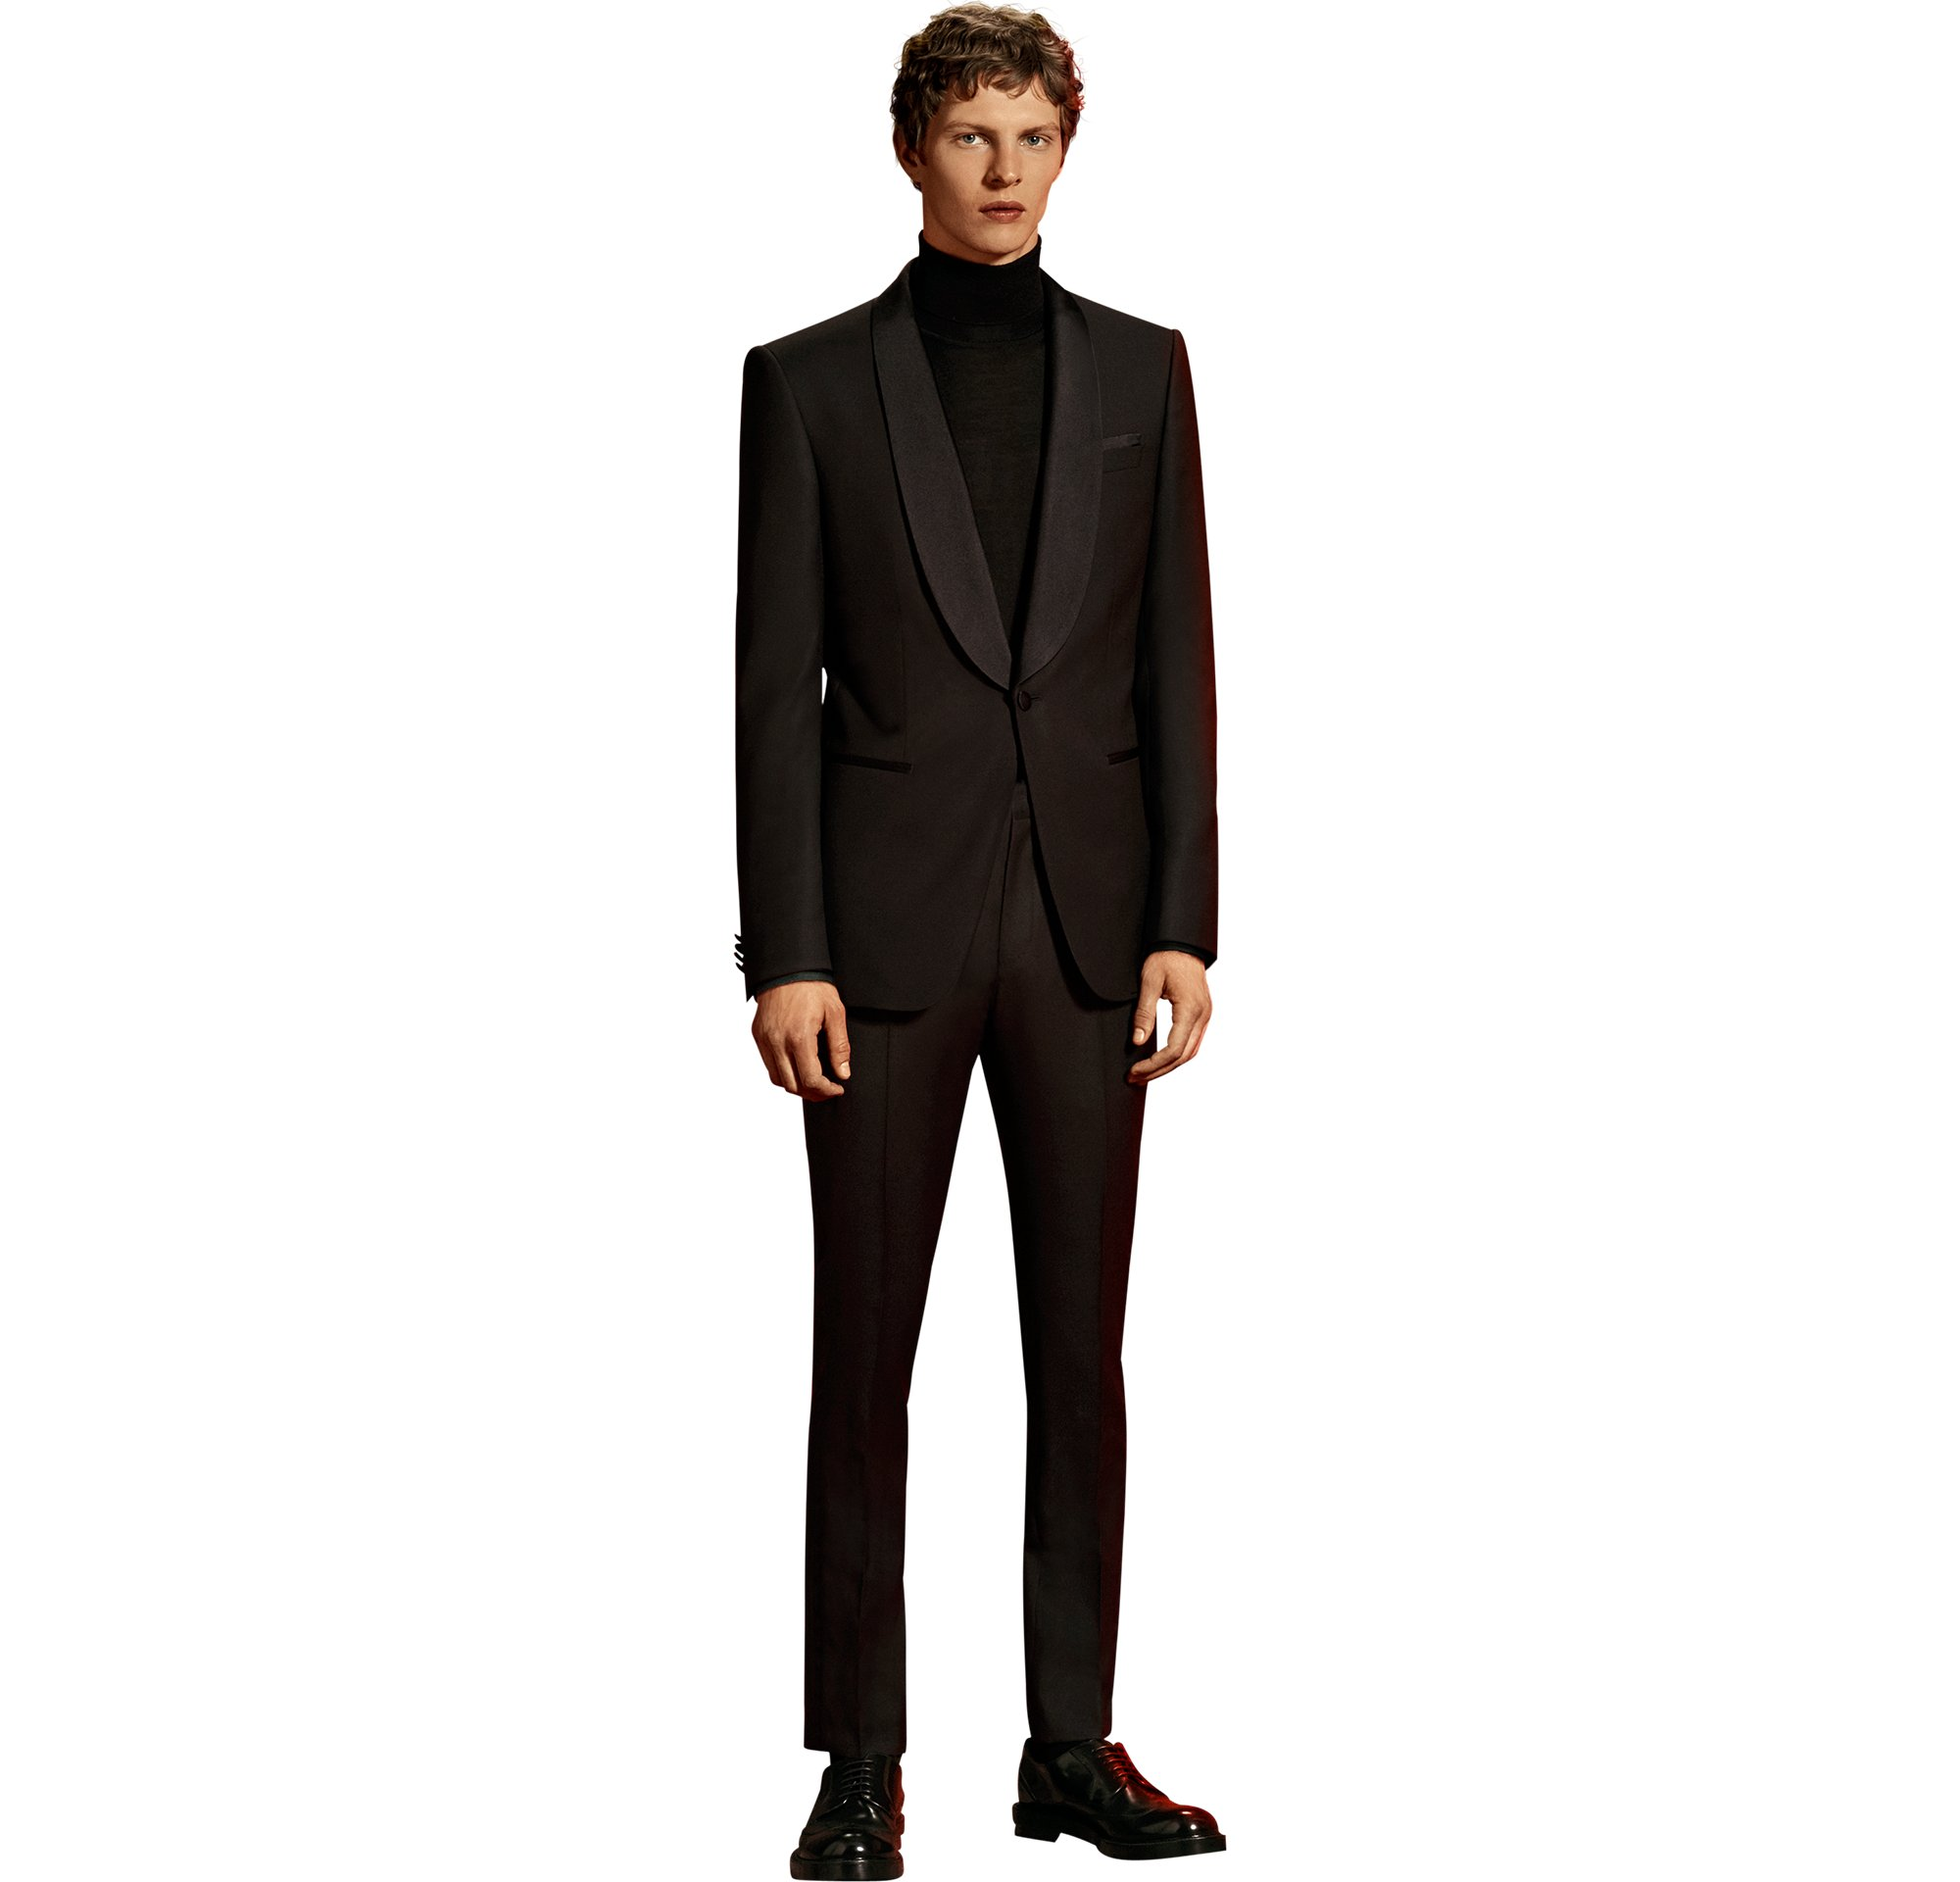 CTG_BOSS_Men_PS18_Look_22,